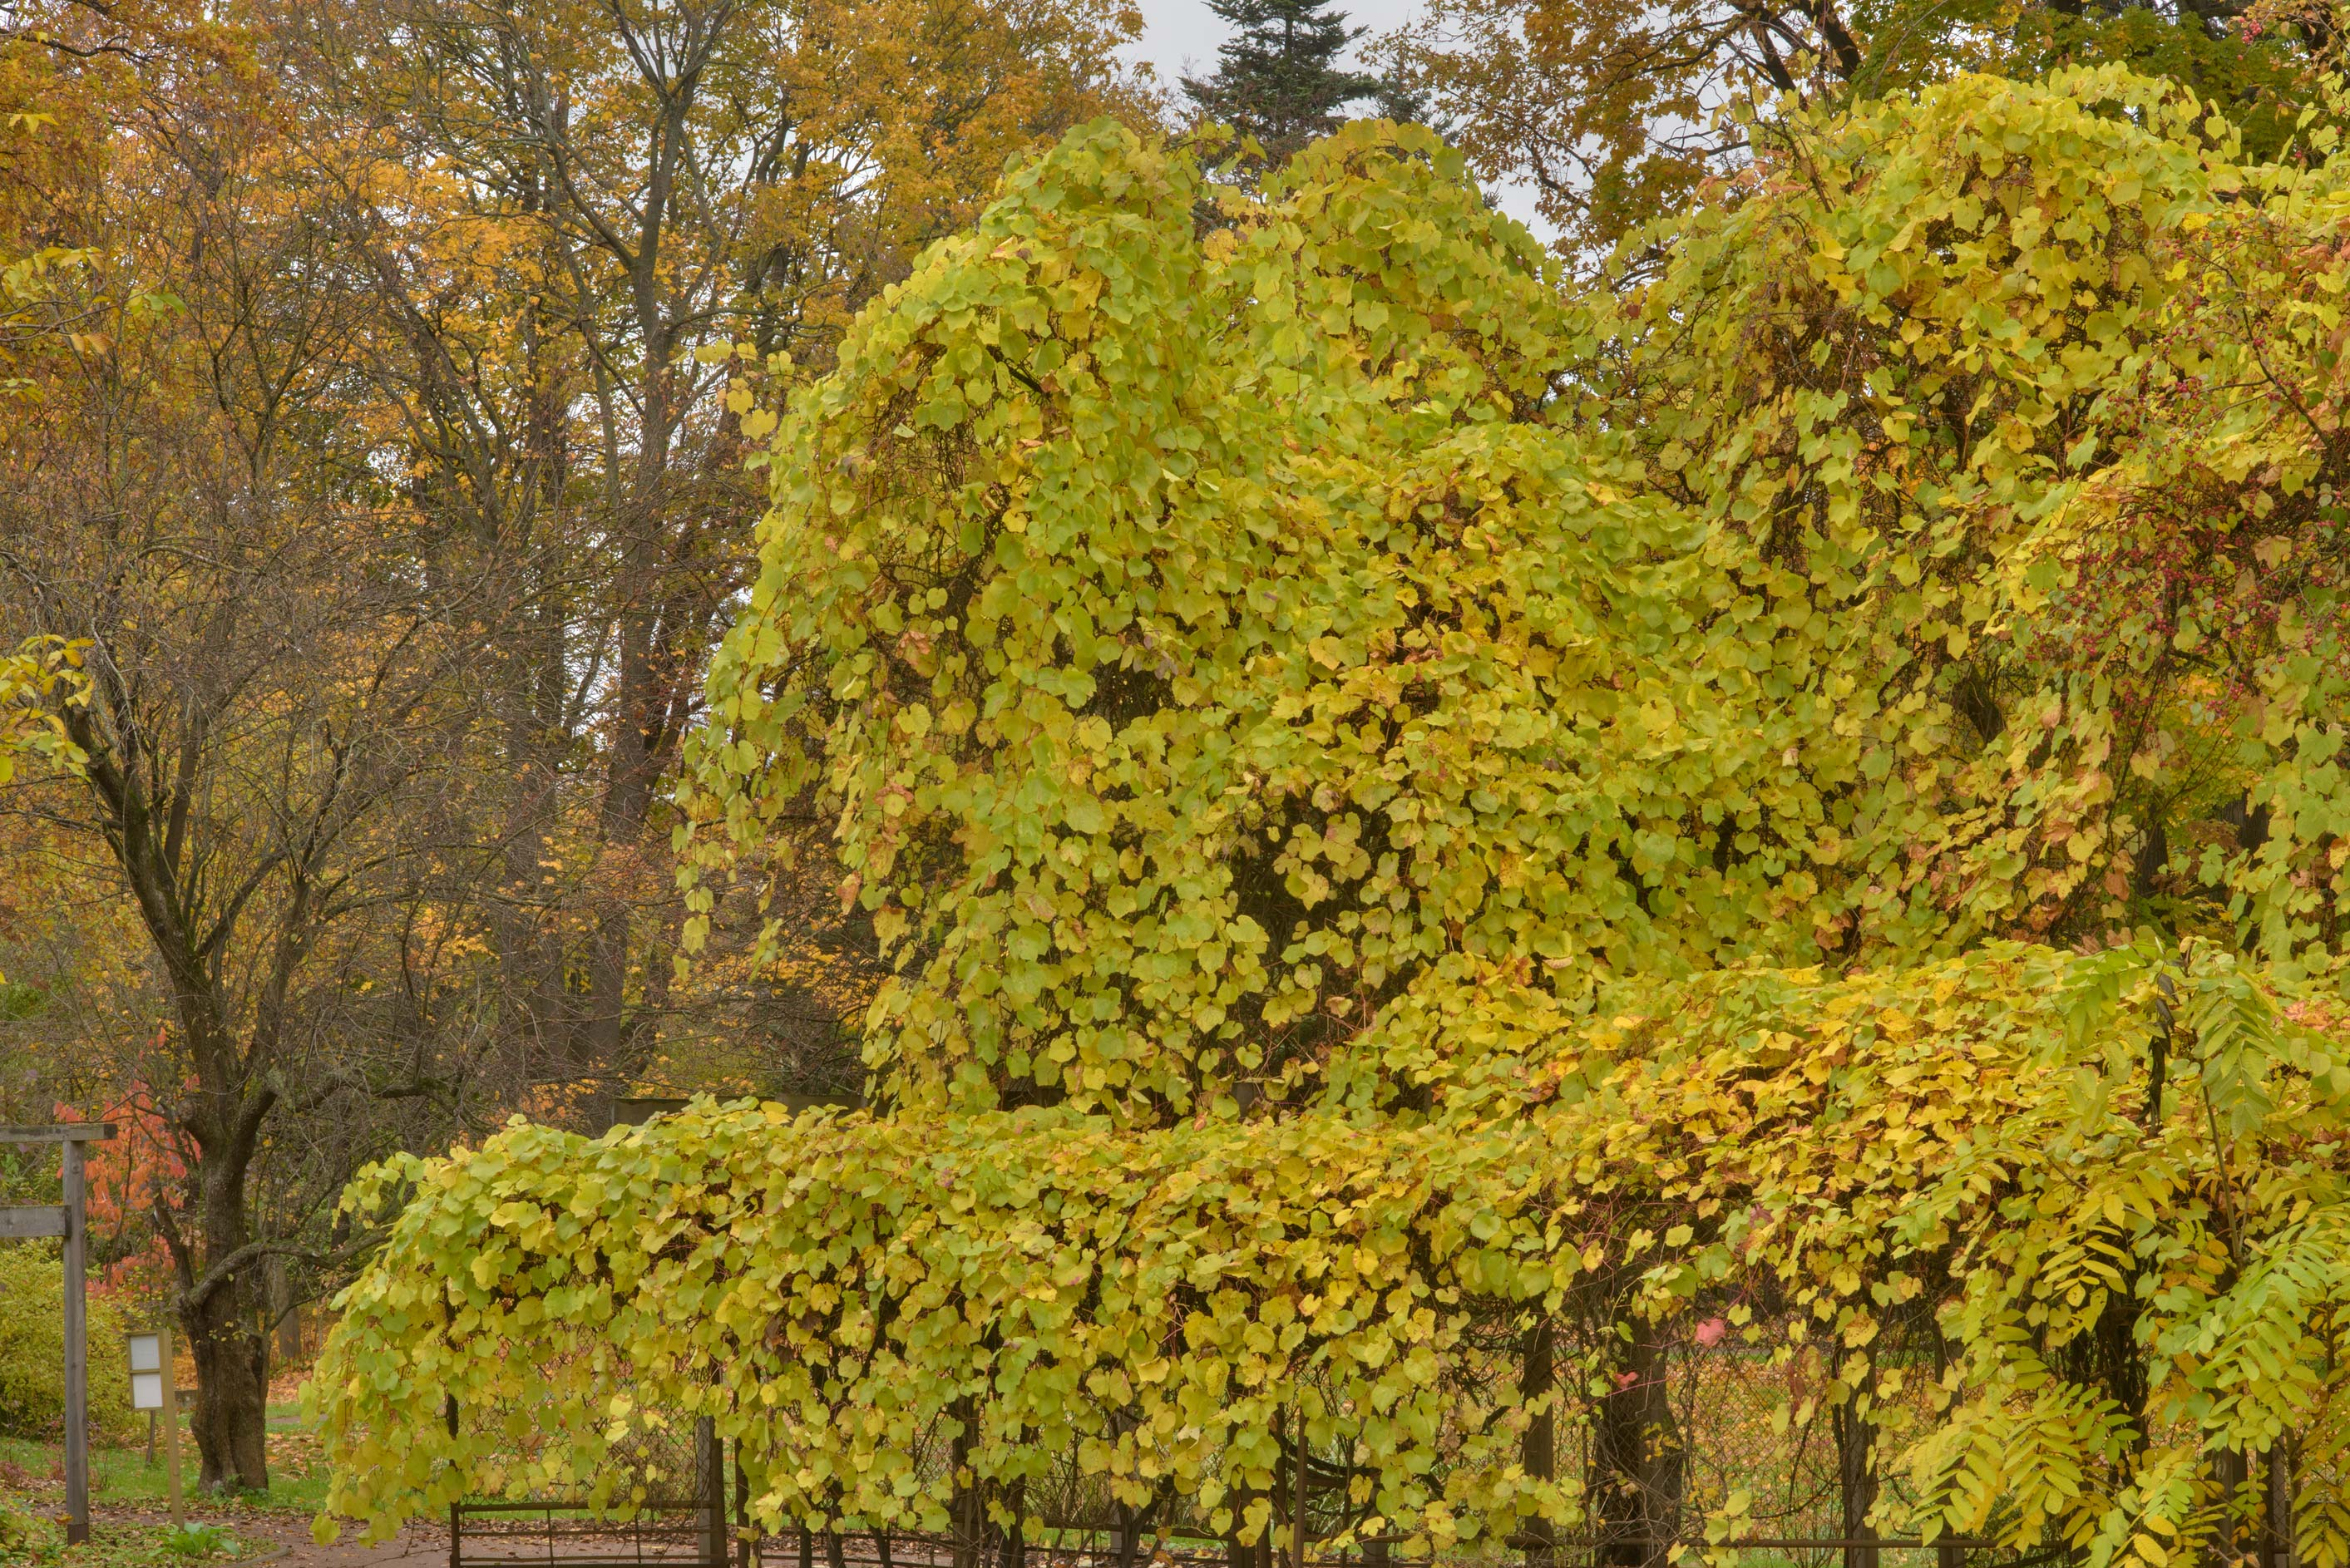 Yellow leaves of vines in Botanic Gardens of...Institute. St.Petersburg, Russia